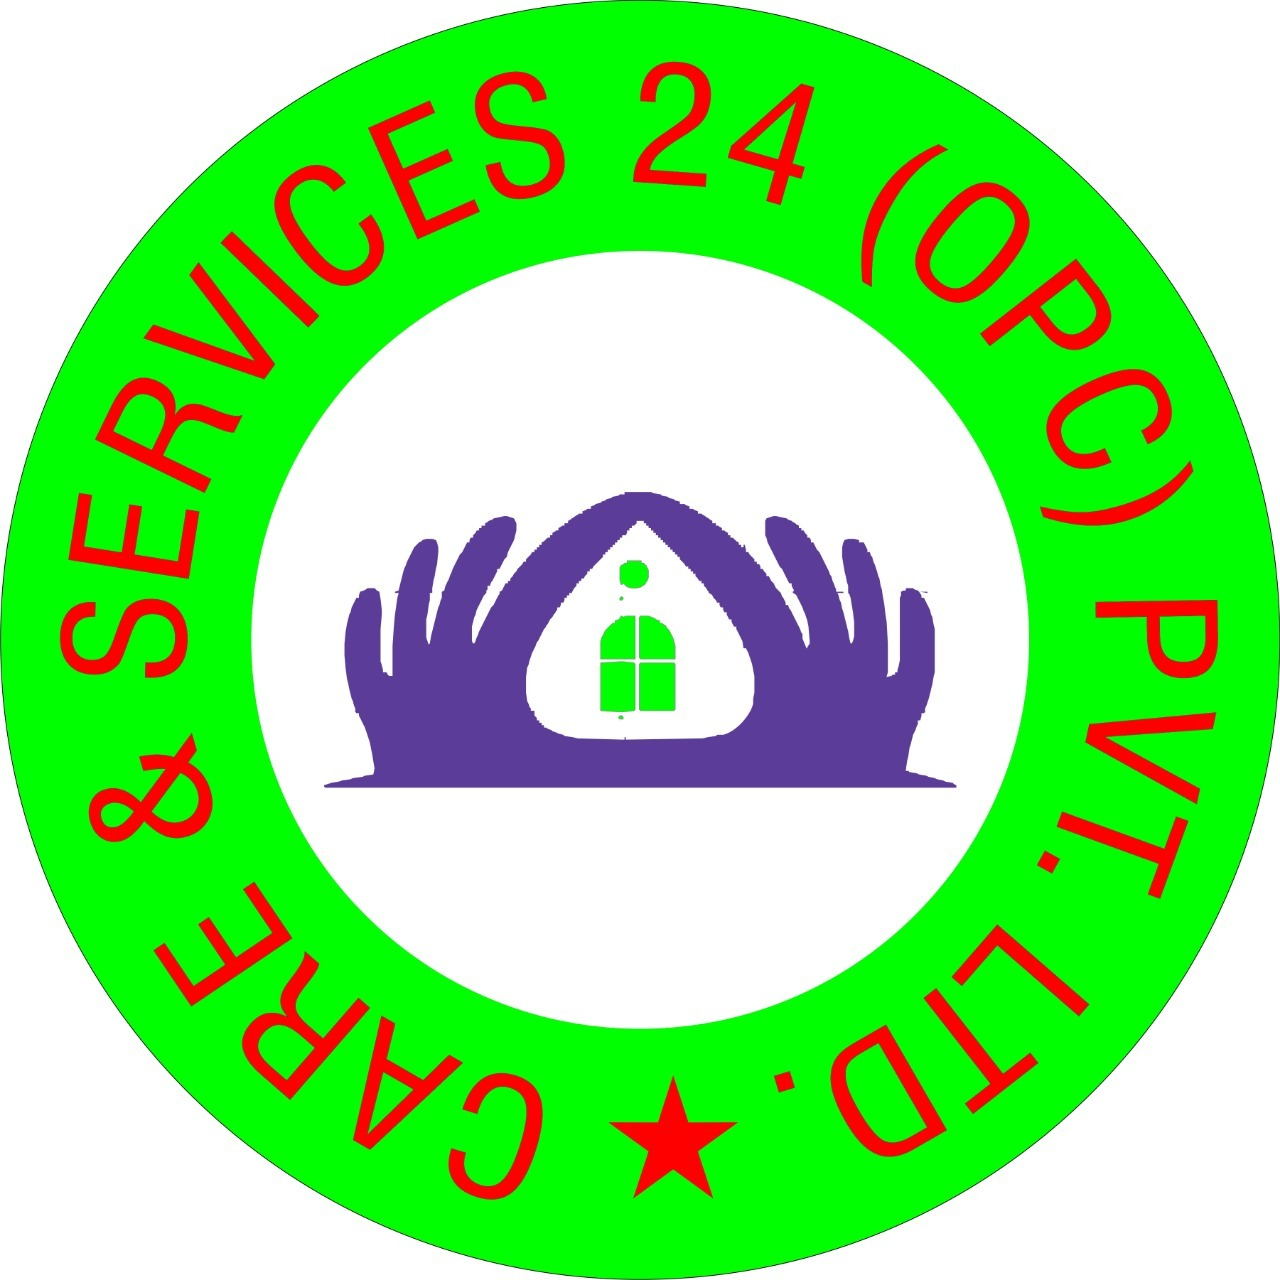 Care and services 24 (opc)Pvt. Ltd